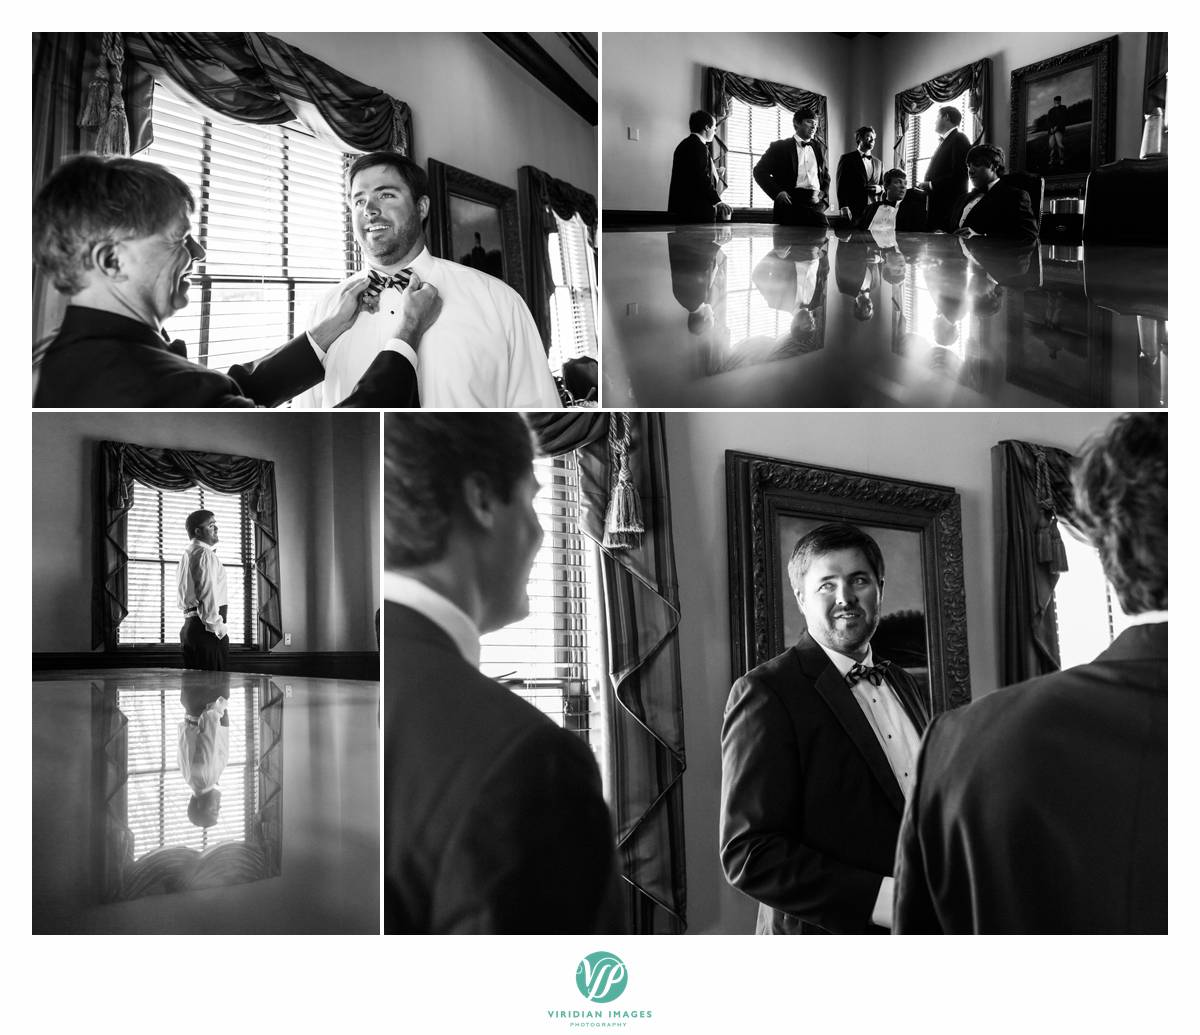 Eagles-Landing-Country-Club-Atlanta-Wedding-Viridian-Images-Photography-photo 8